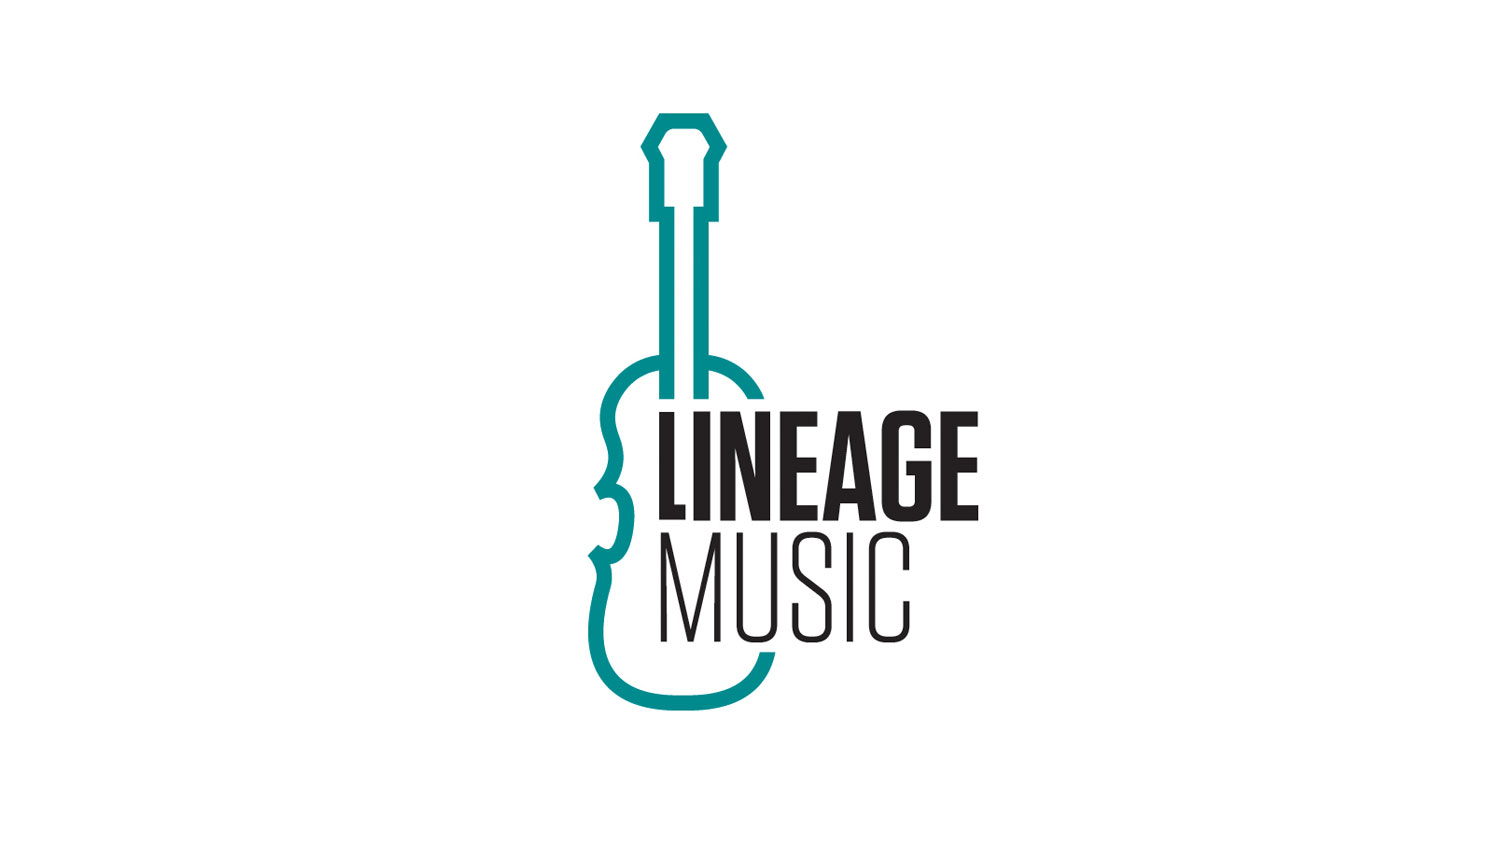 Lineage Music is a non-profit that provides music lessons to children. They needed a professional and modern rebrand. This fiddle/violin icon paired with typography is the solution we came up with to position them as the Fort Collins authority on music lessons for kids.